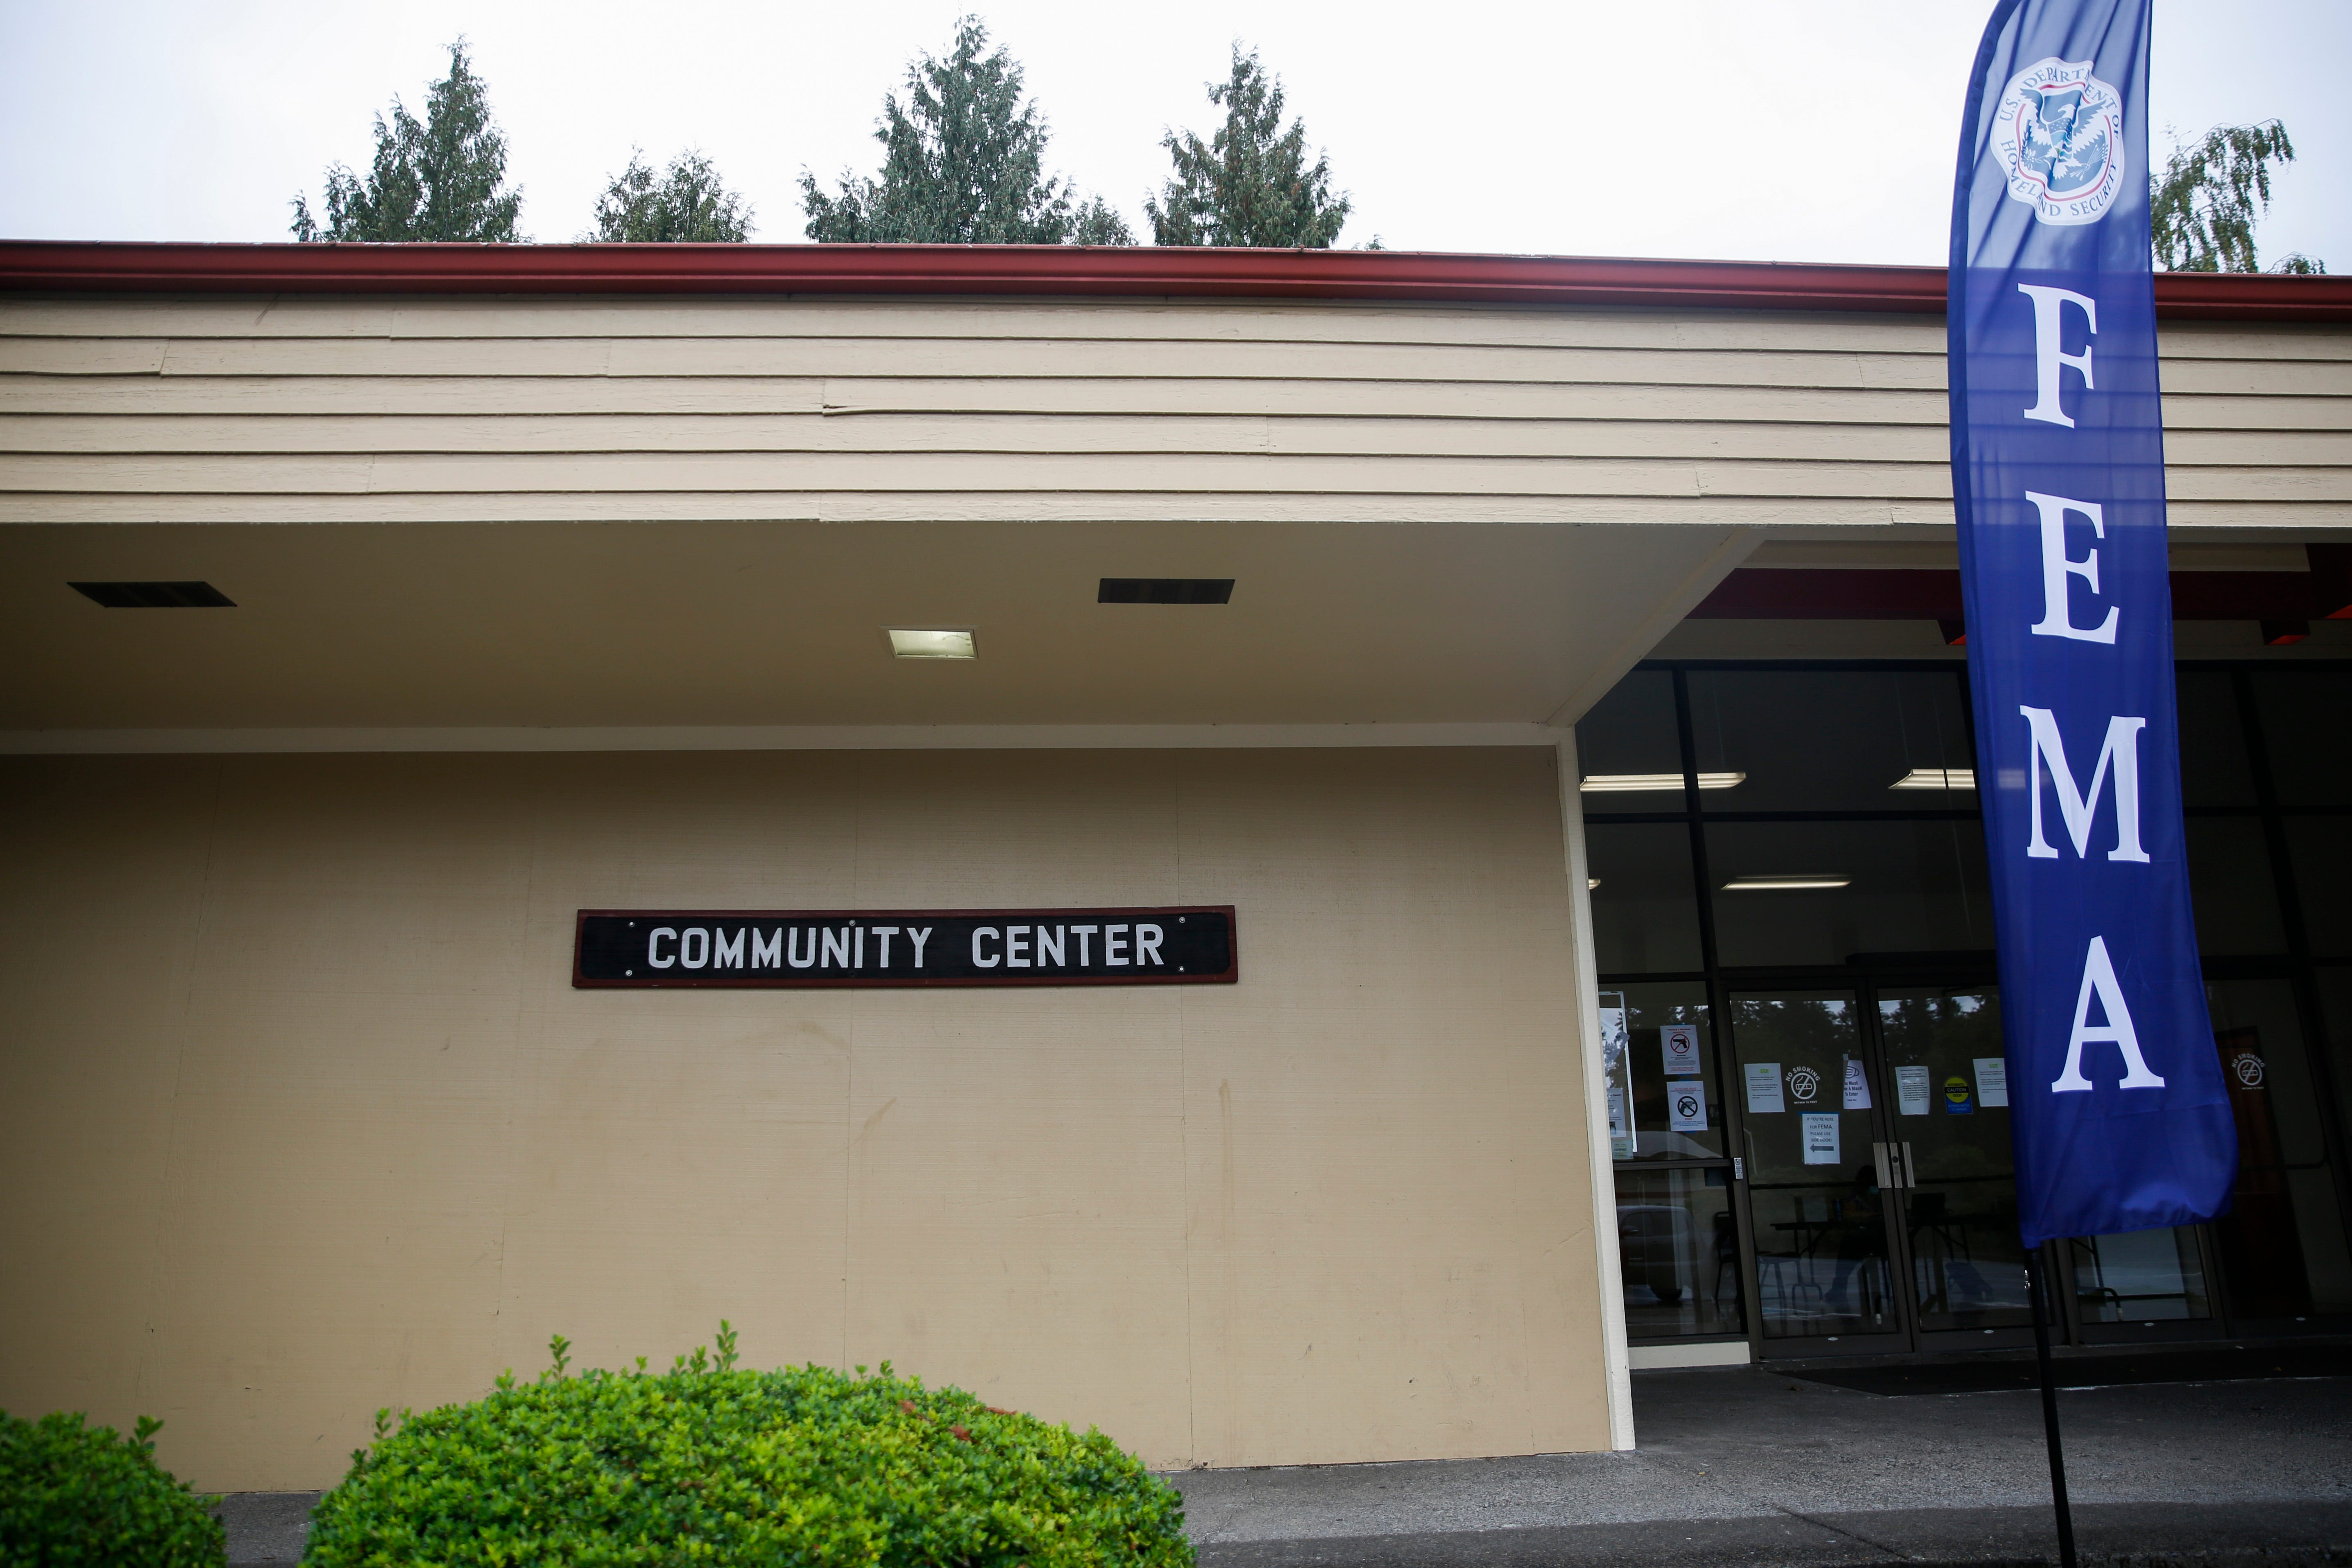 Resources are available through FEMA for Santiam Canyon residents recovering from the wildfires at the Community Center in Stayton.